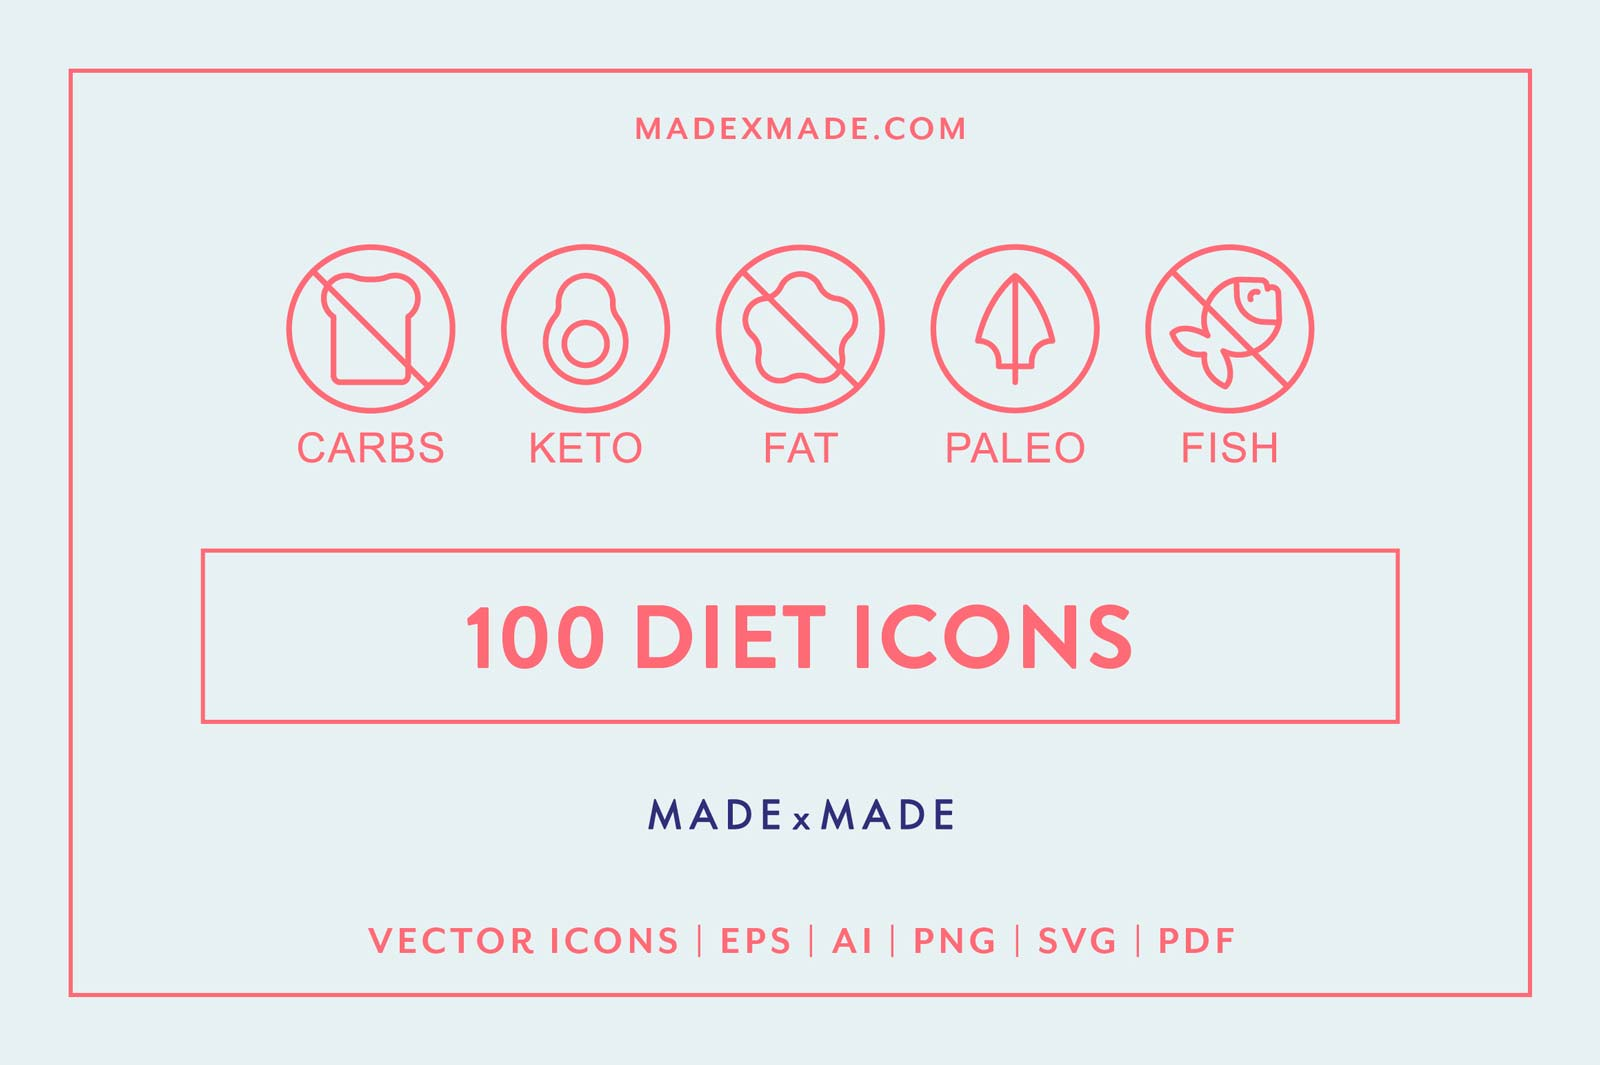 made x made icons diet